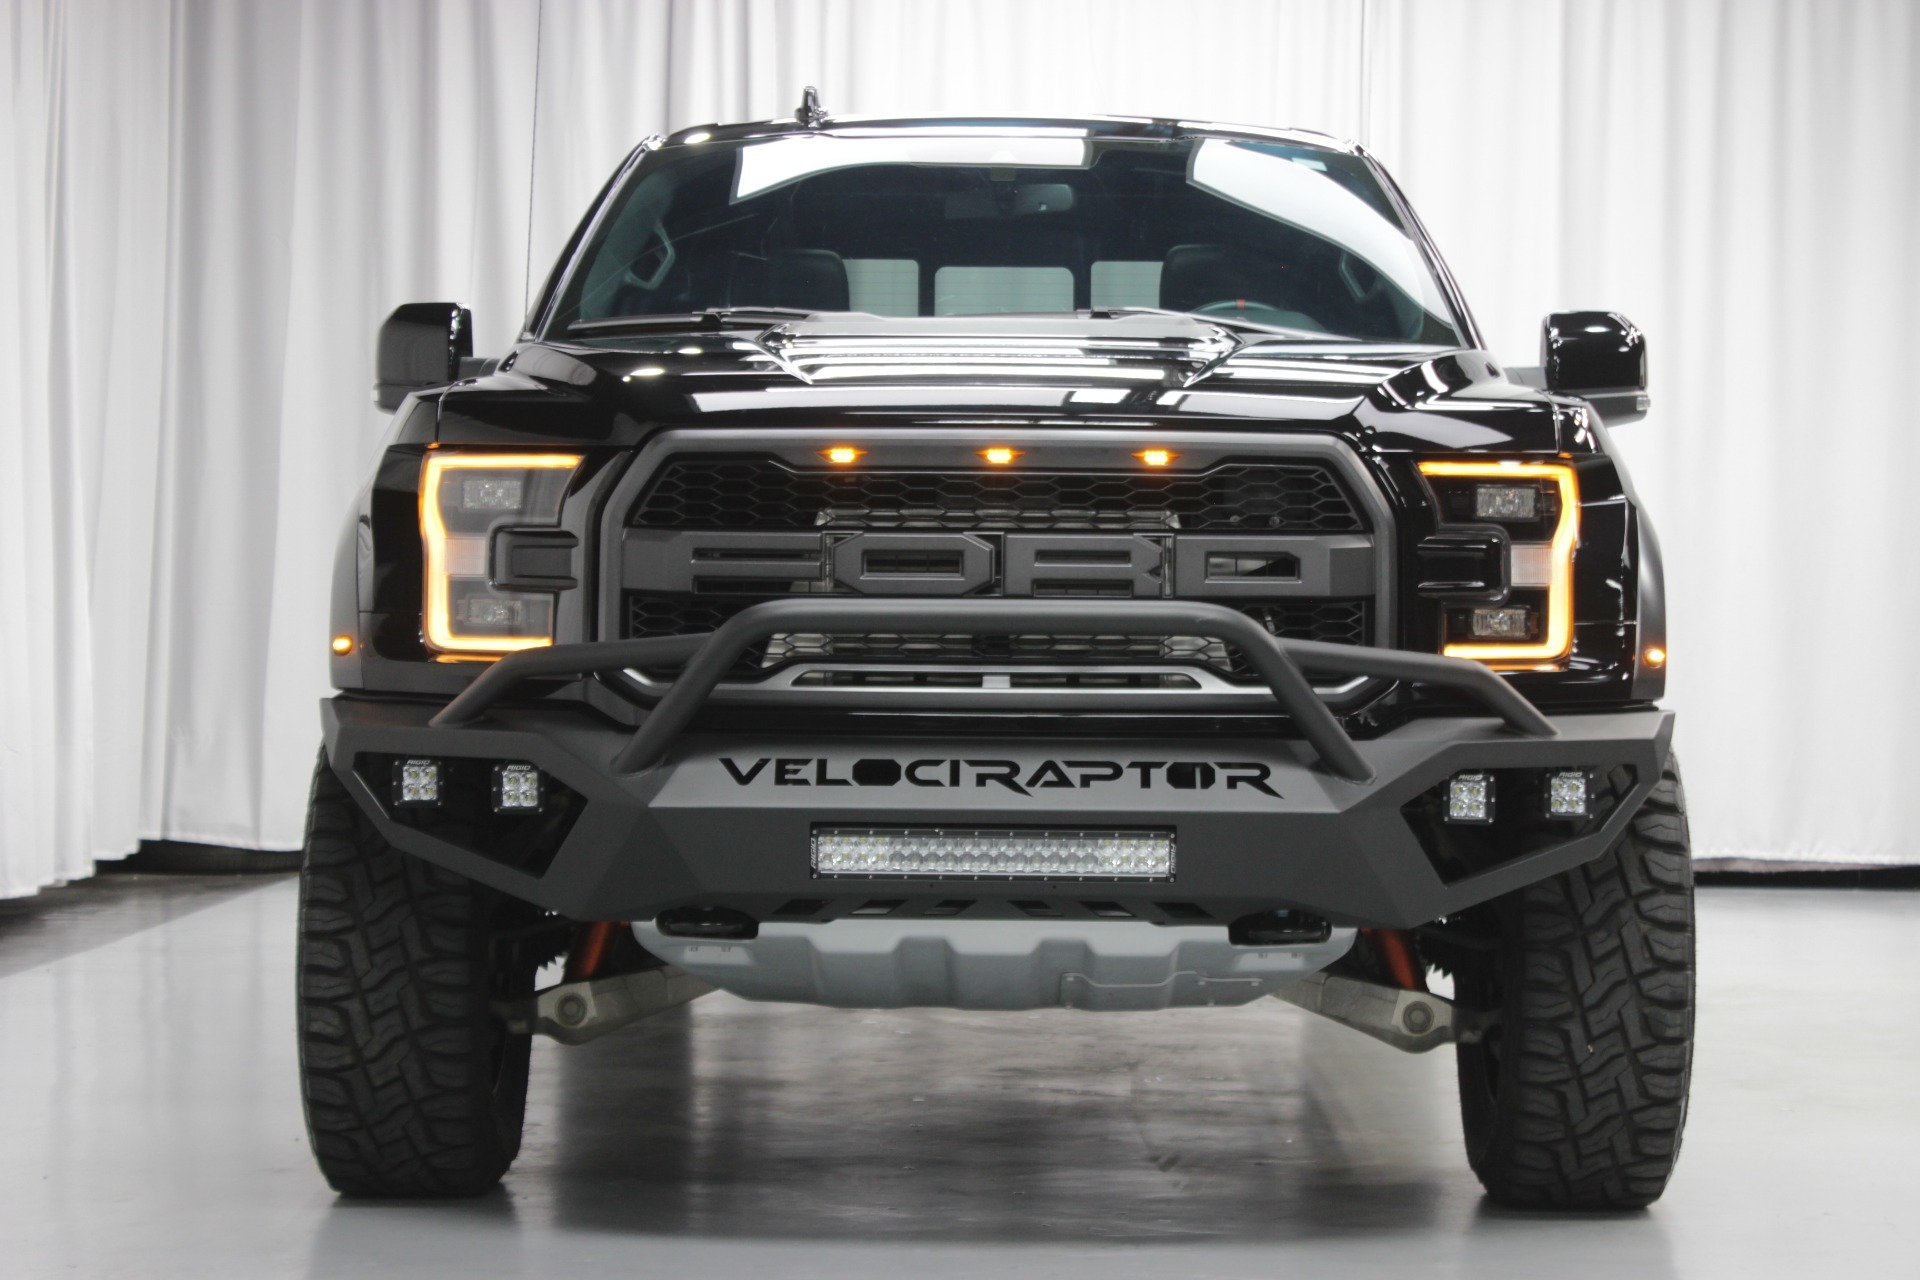 Used 2019 Ford F-150 RAPTOR 4x4 HENNESSY VELOCIRAPTOR VR600 UPGRADE (600HP) for sale $109,995 at Formula Imports in Charlotte NC 28227 4